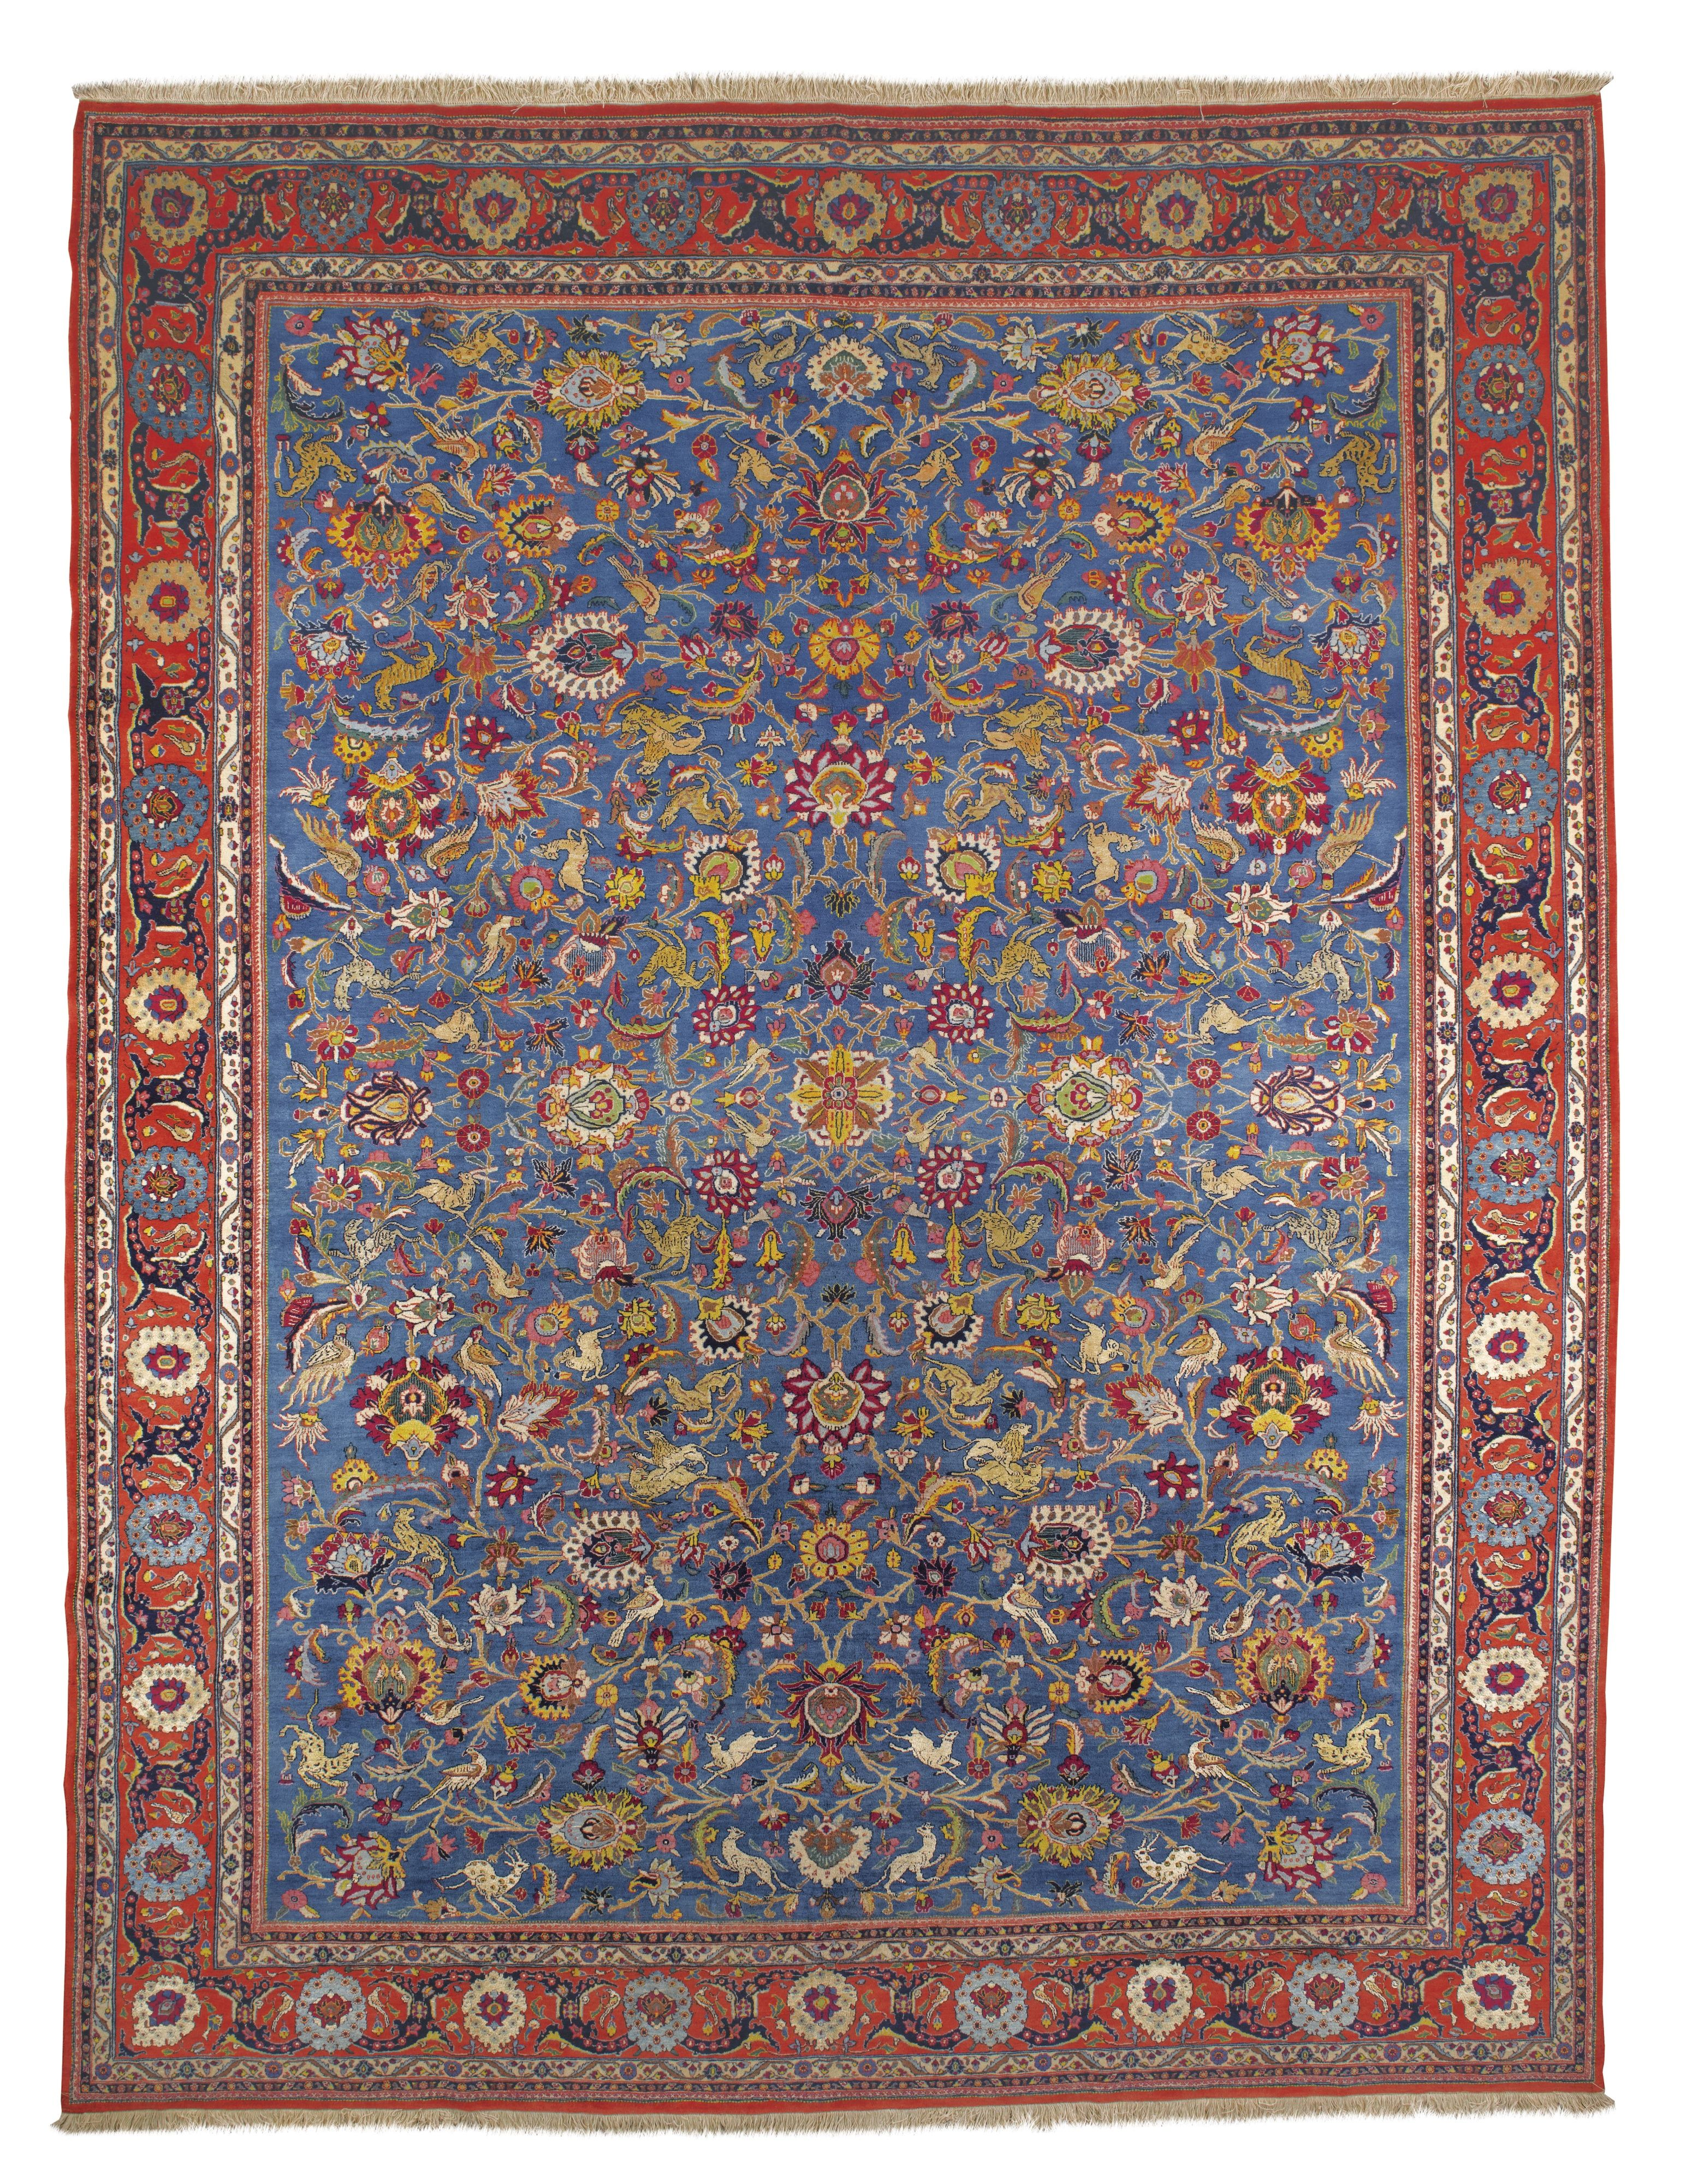 A Tehran Carpet North Persia Lot Sotheby S Stair Runner Carpet Persian Rug Rugs